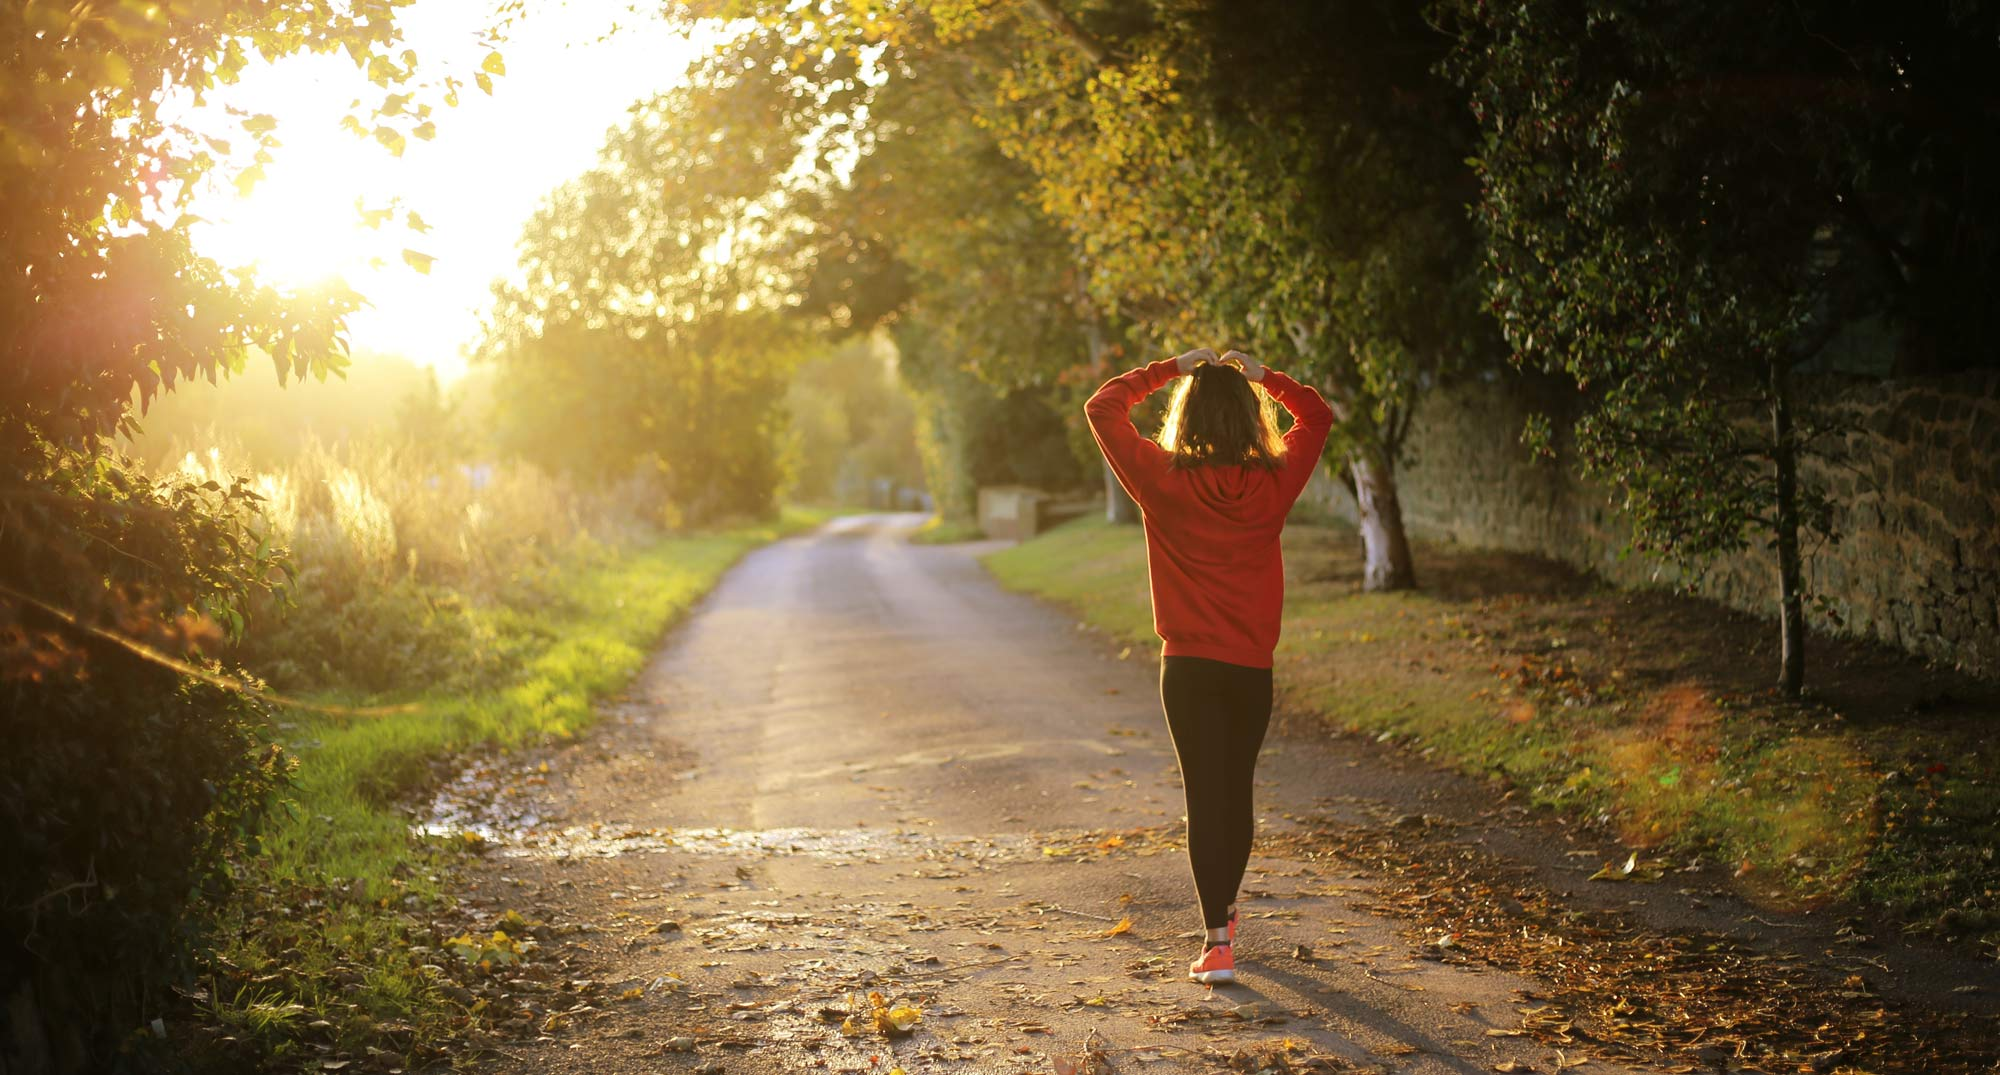 How to Encourage Your Loved Ones to be More Active